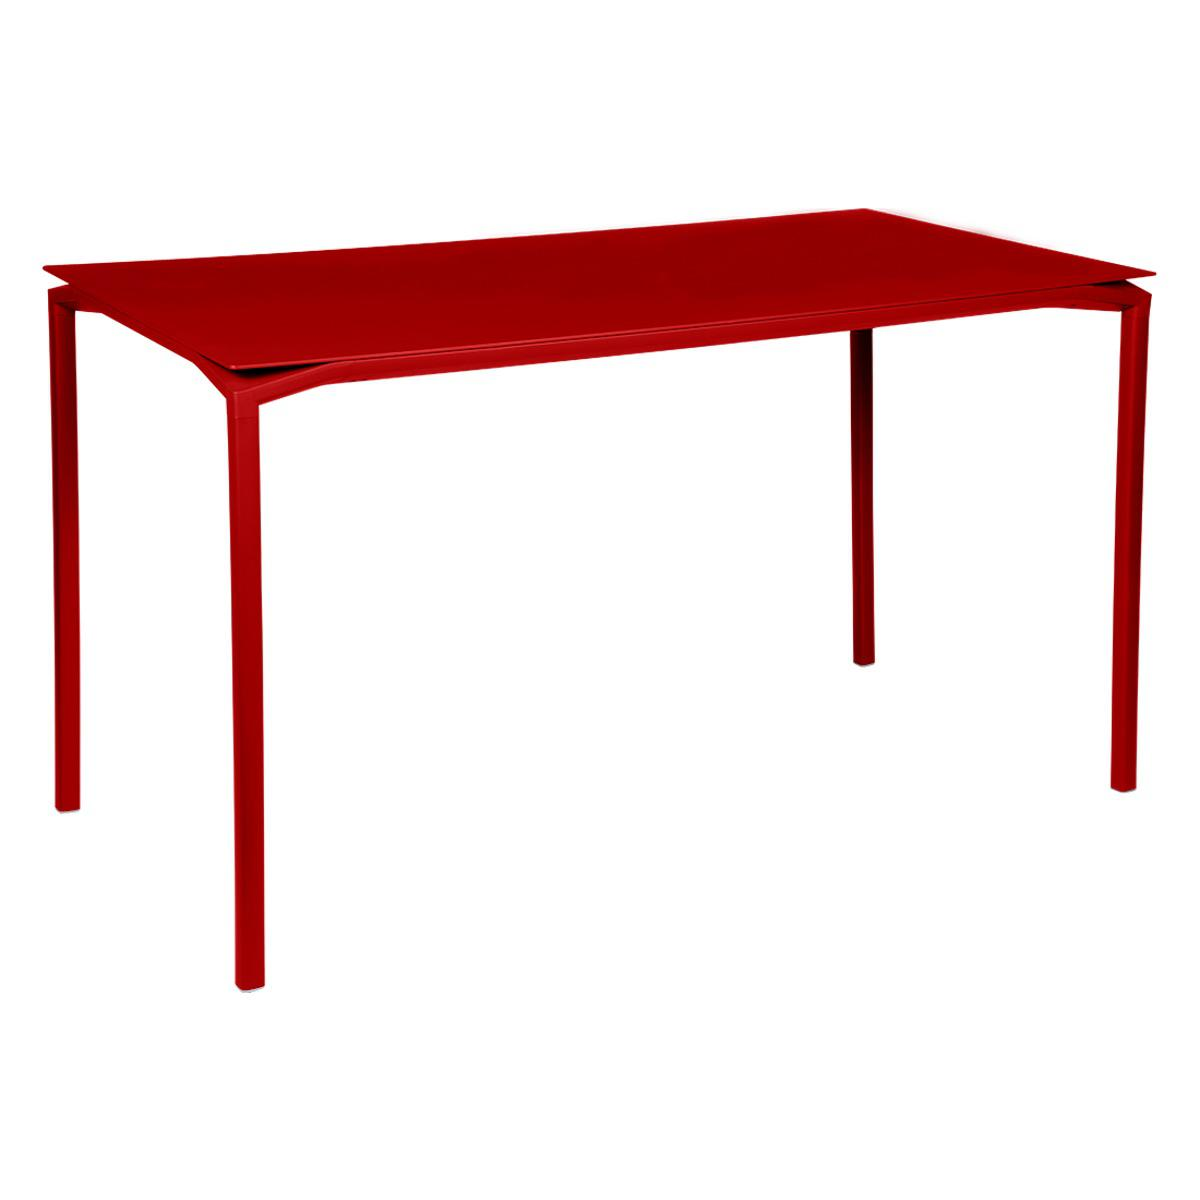 Table 80x160cm CALVI Fermob rouge coquelicot